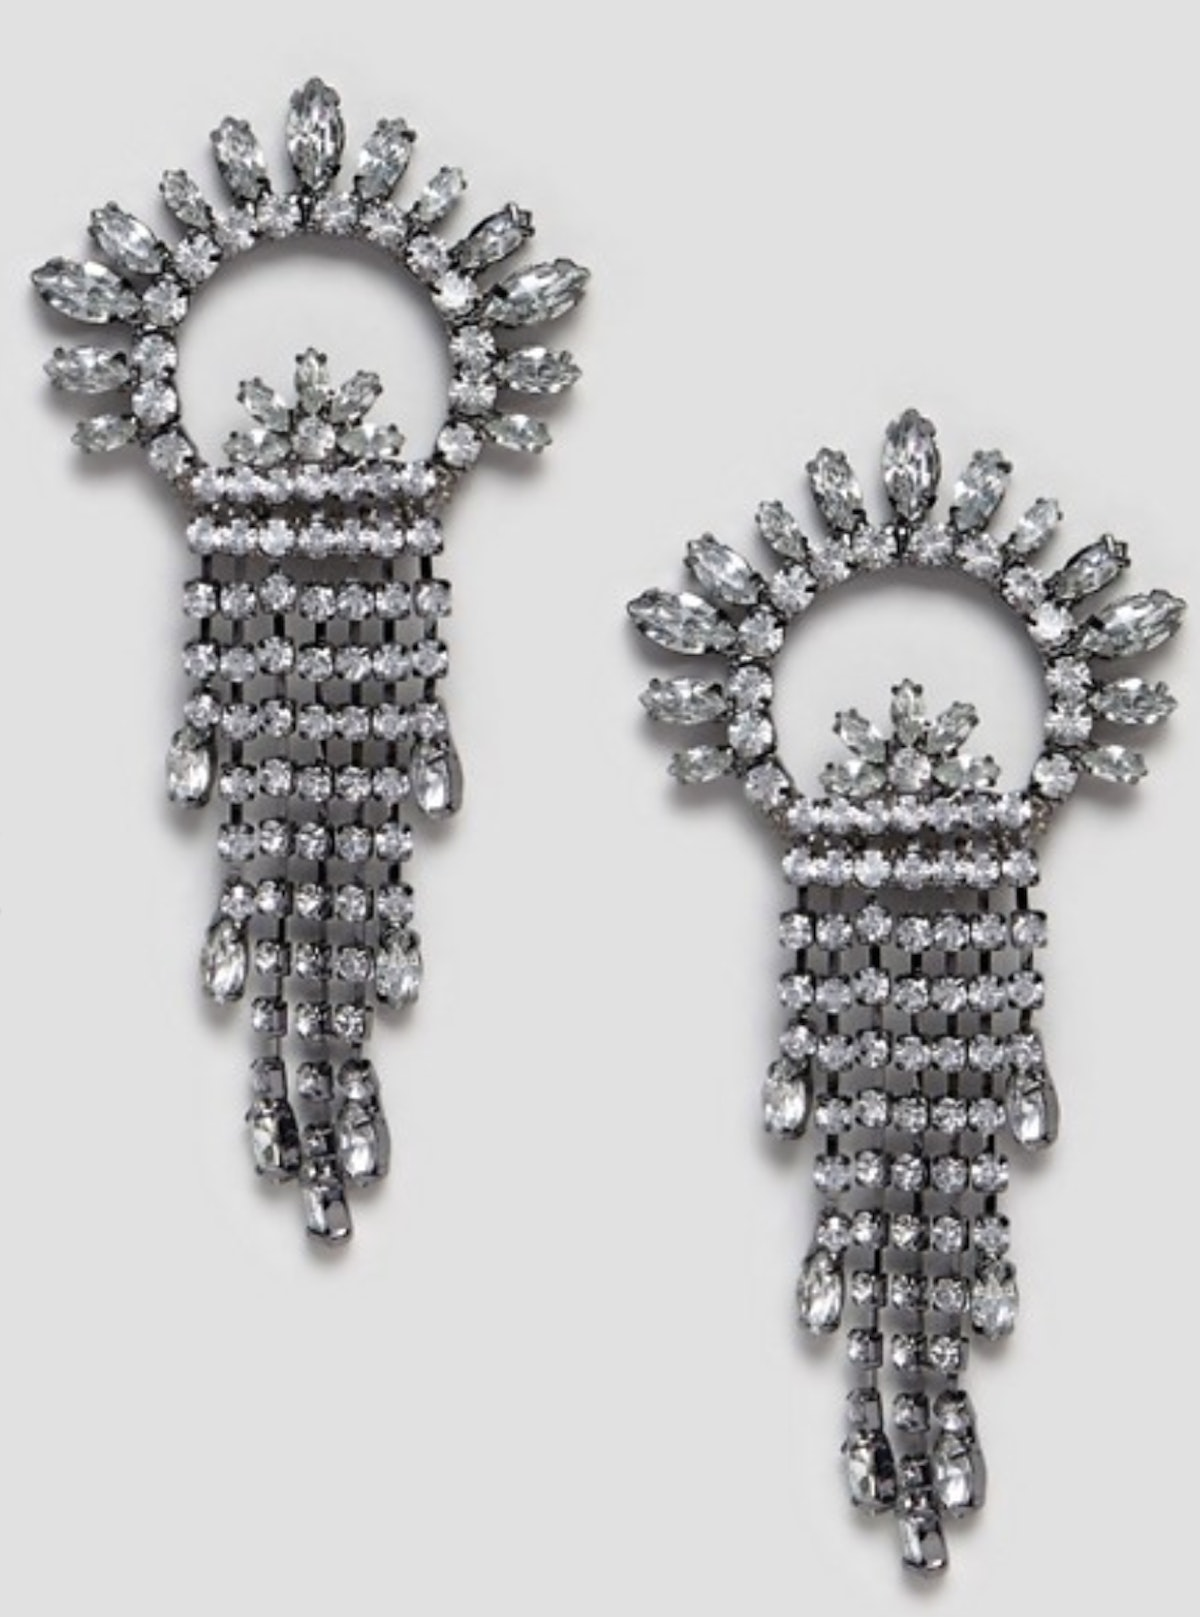 ASOS DESIGN Earrings With Crystal Fan And Strand Design in Gunmetal